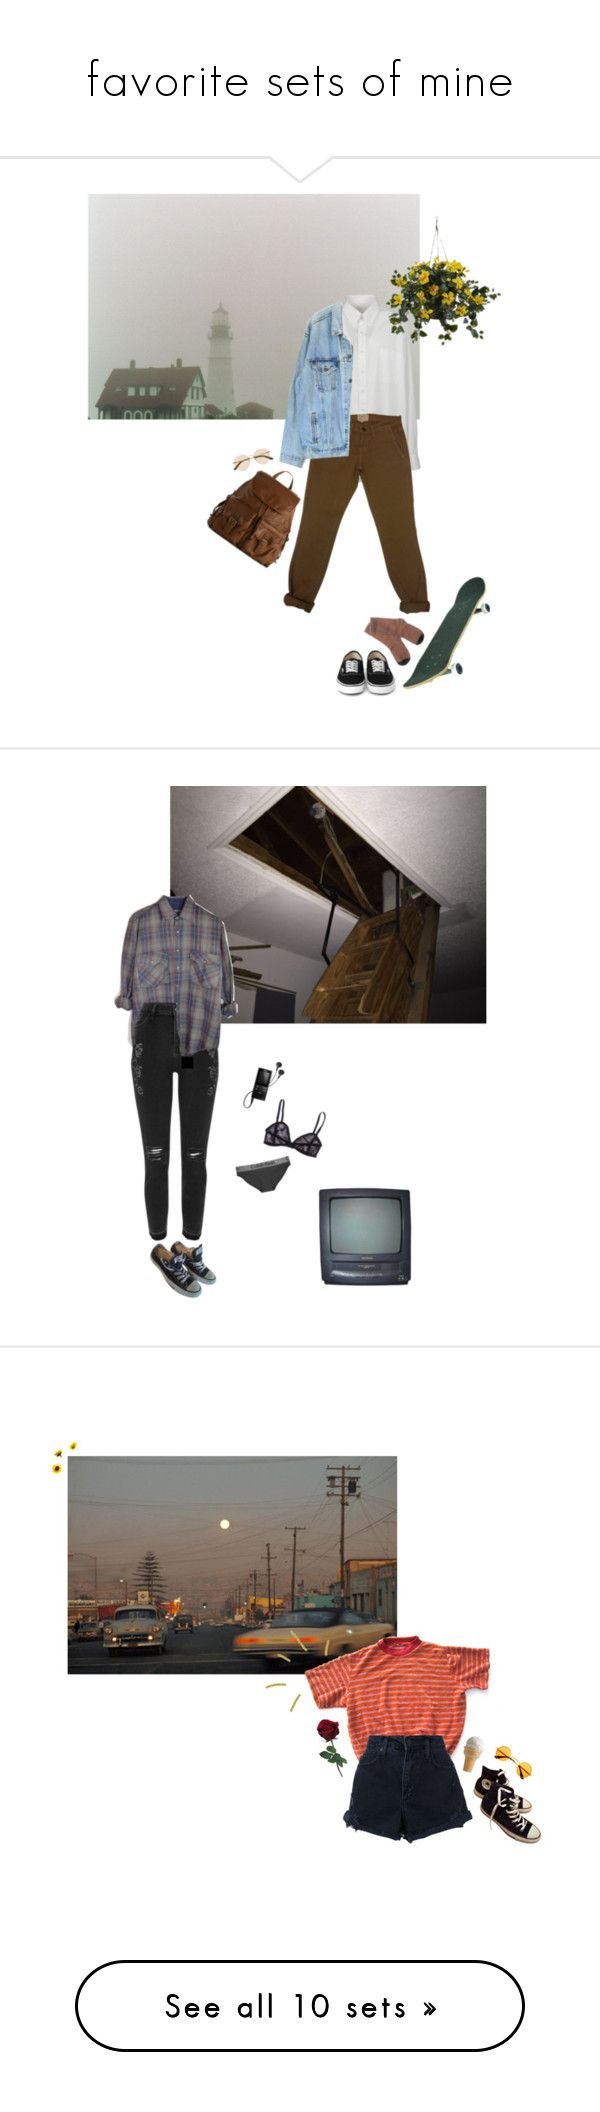 """""""favorite sets of mine"""" by the-cheap-bouquet ❤ liked on Polyvore featuring Maison Margiela, Current/Elliott, Golden Goose, Levi's, Nearly Natural, Mix No. 6, The Row, River Island, Converse and Sony"""